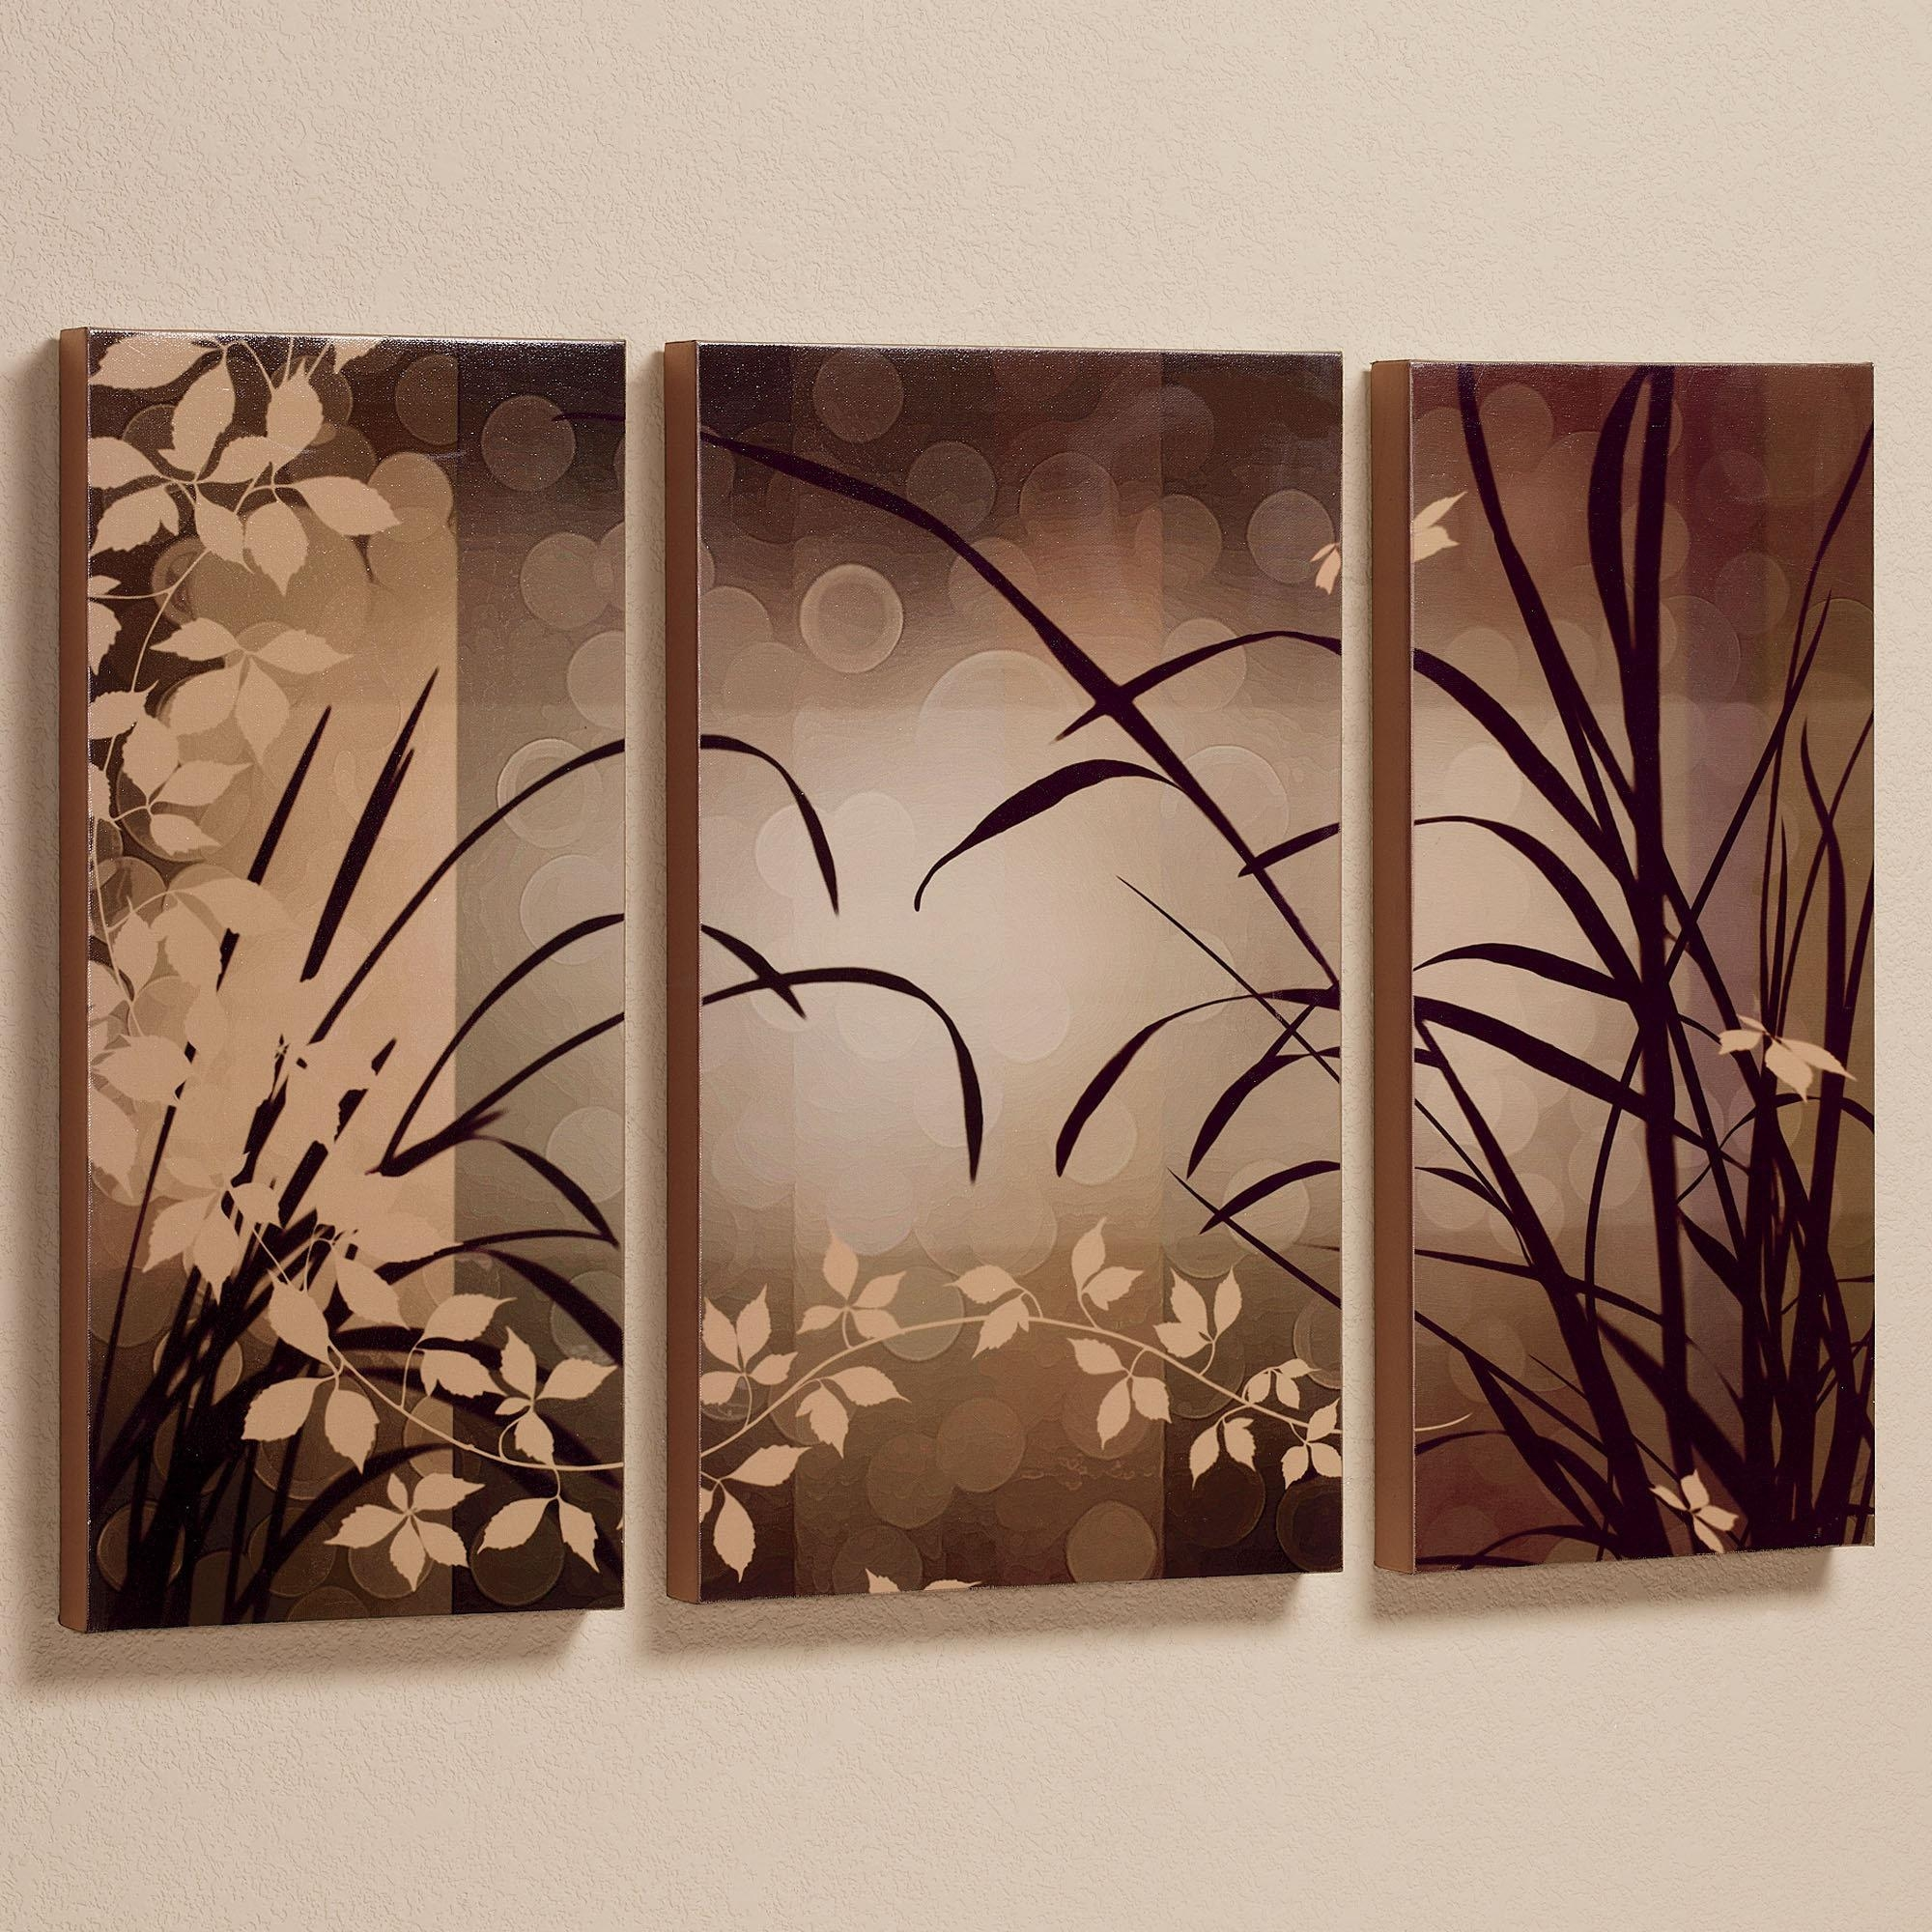 Wall Art Designs: Modern Designing Triptych Wall Art Canvas For Pertaining To Large Triptych Wall Art (Image 15 of 20)